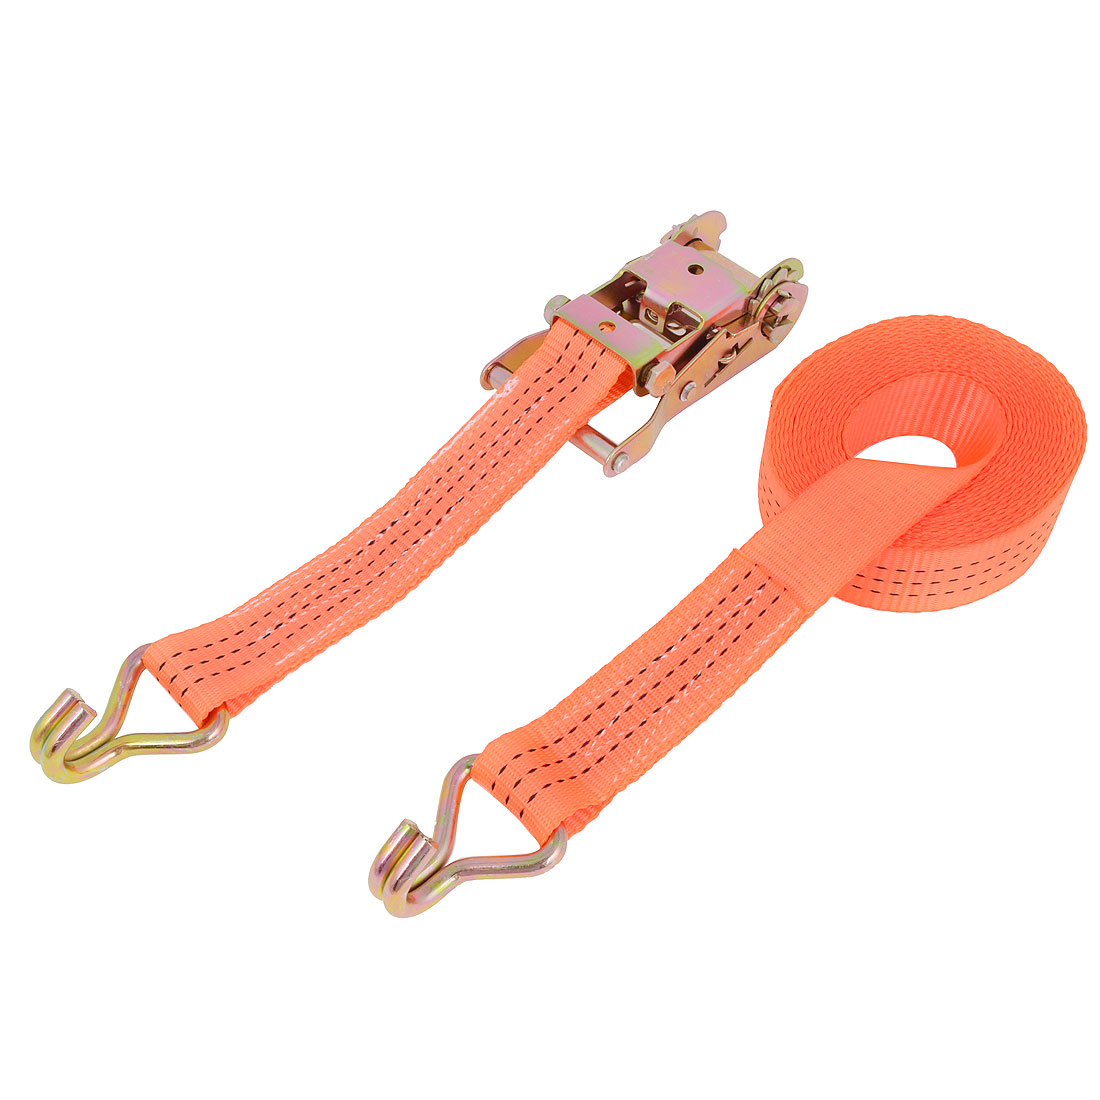 Truck Dual Metal Hook Polyester Luggage Rope Cord 6M Long Orange